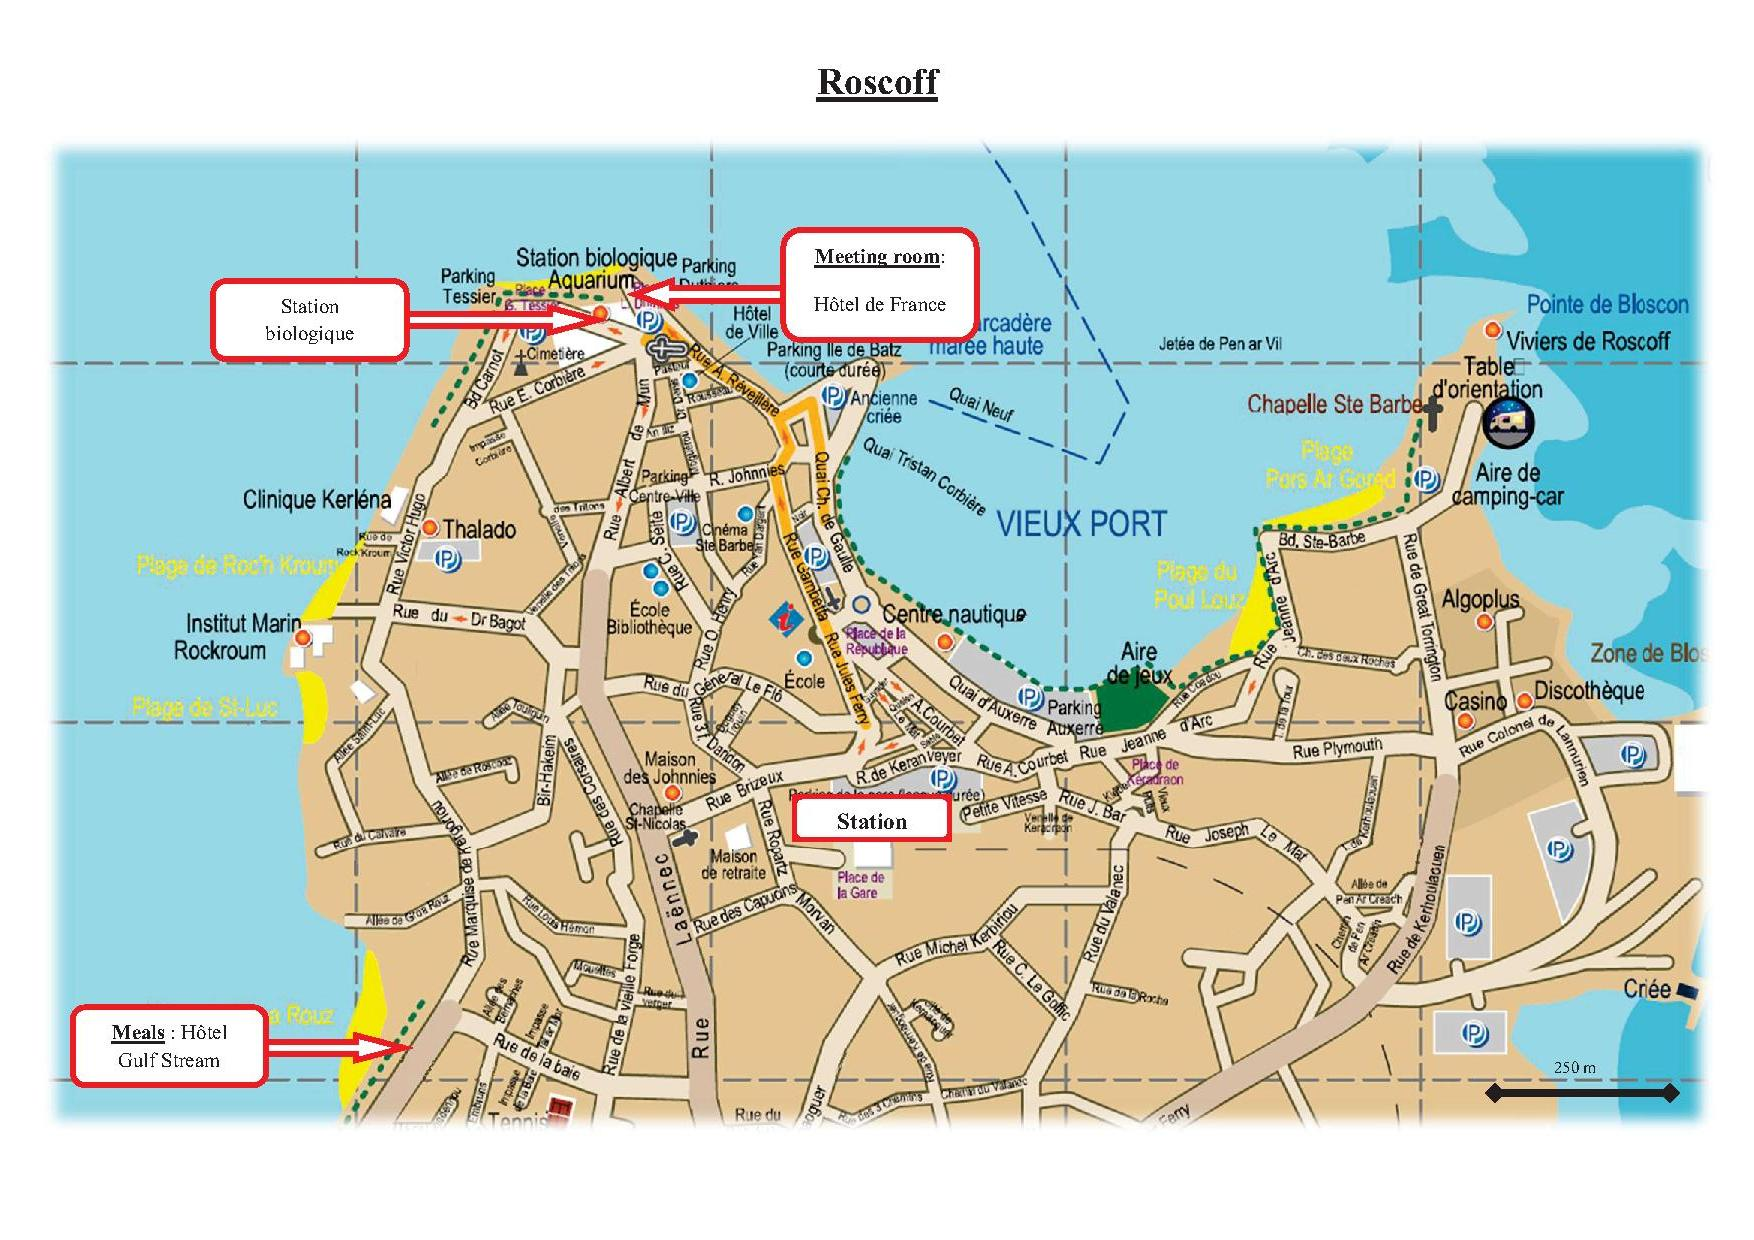 Roscoff France  City pictures : For more information, see the attached map .